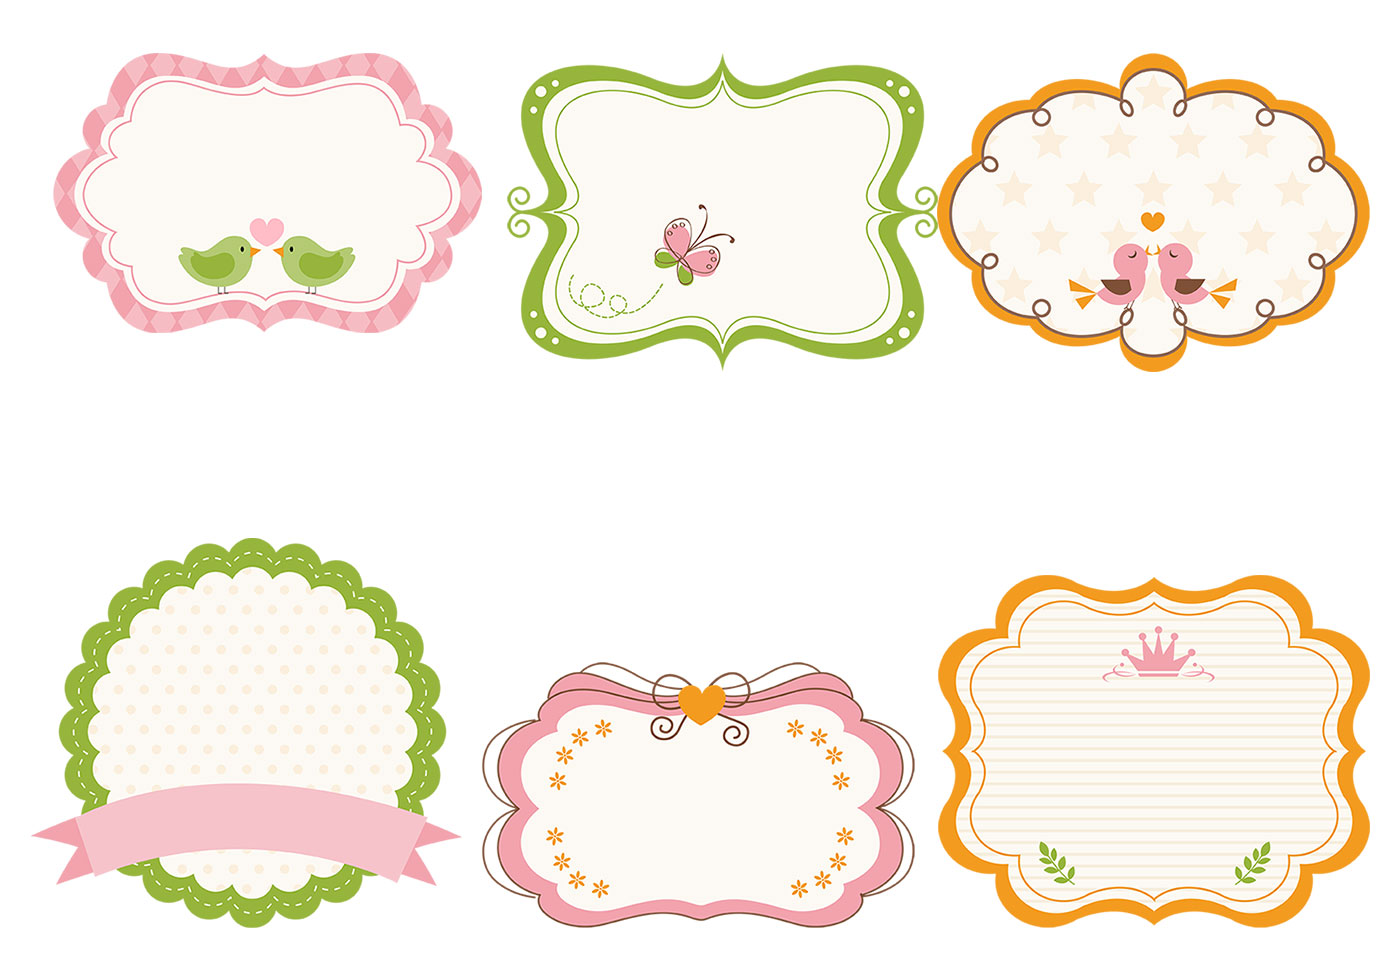 cute girly frame brushes and label brush pack free photoshop brushes at brusheezy